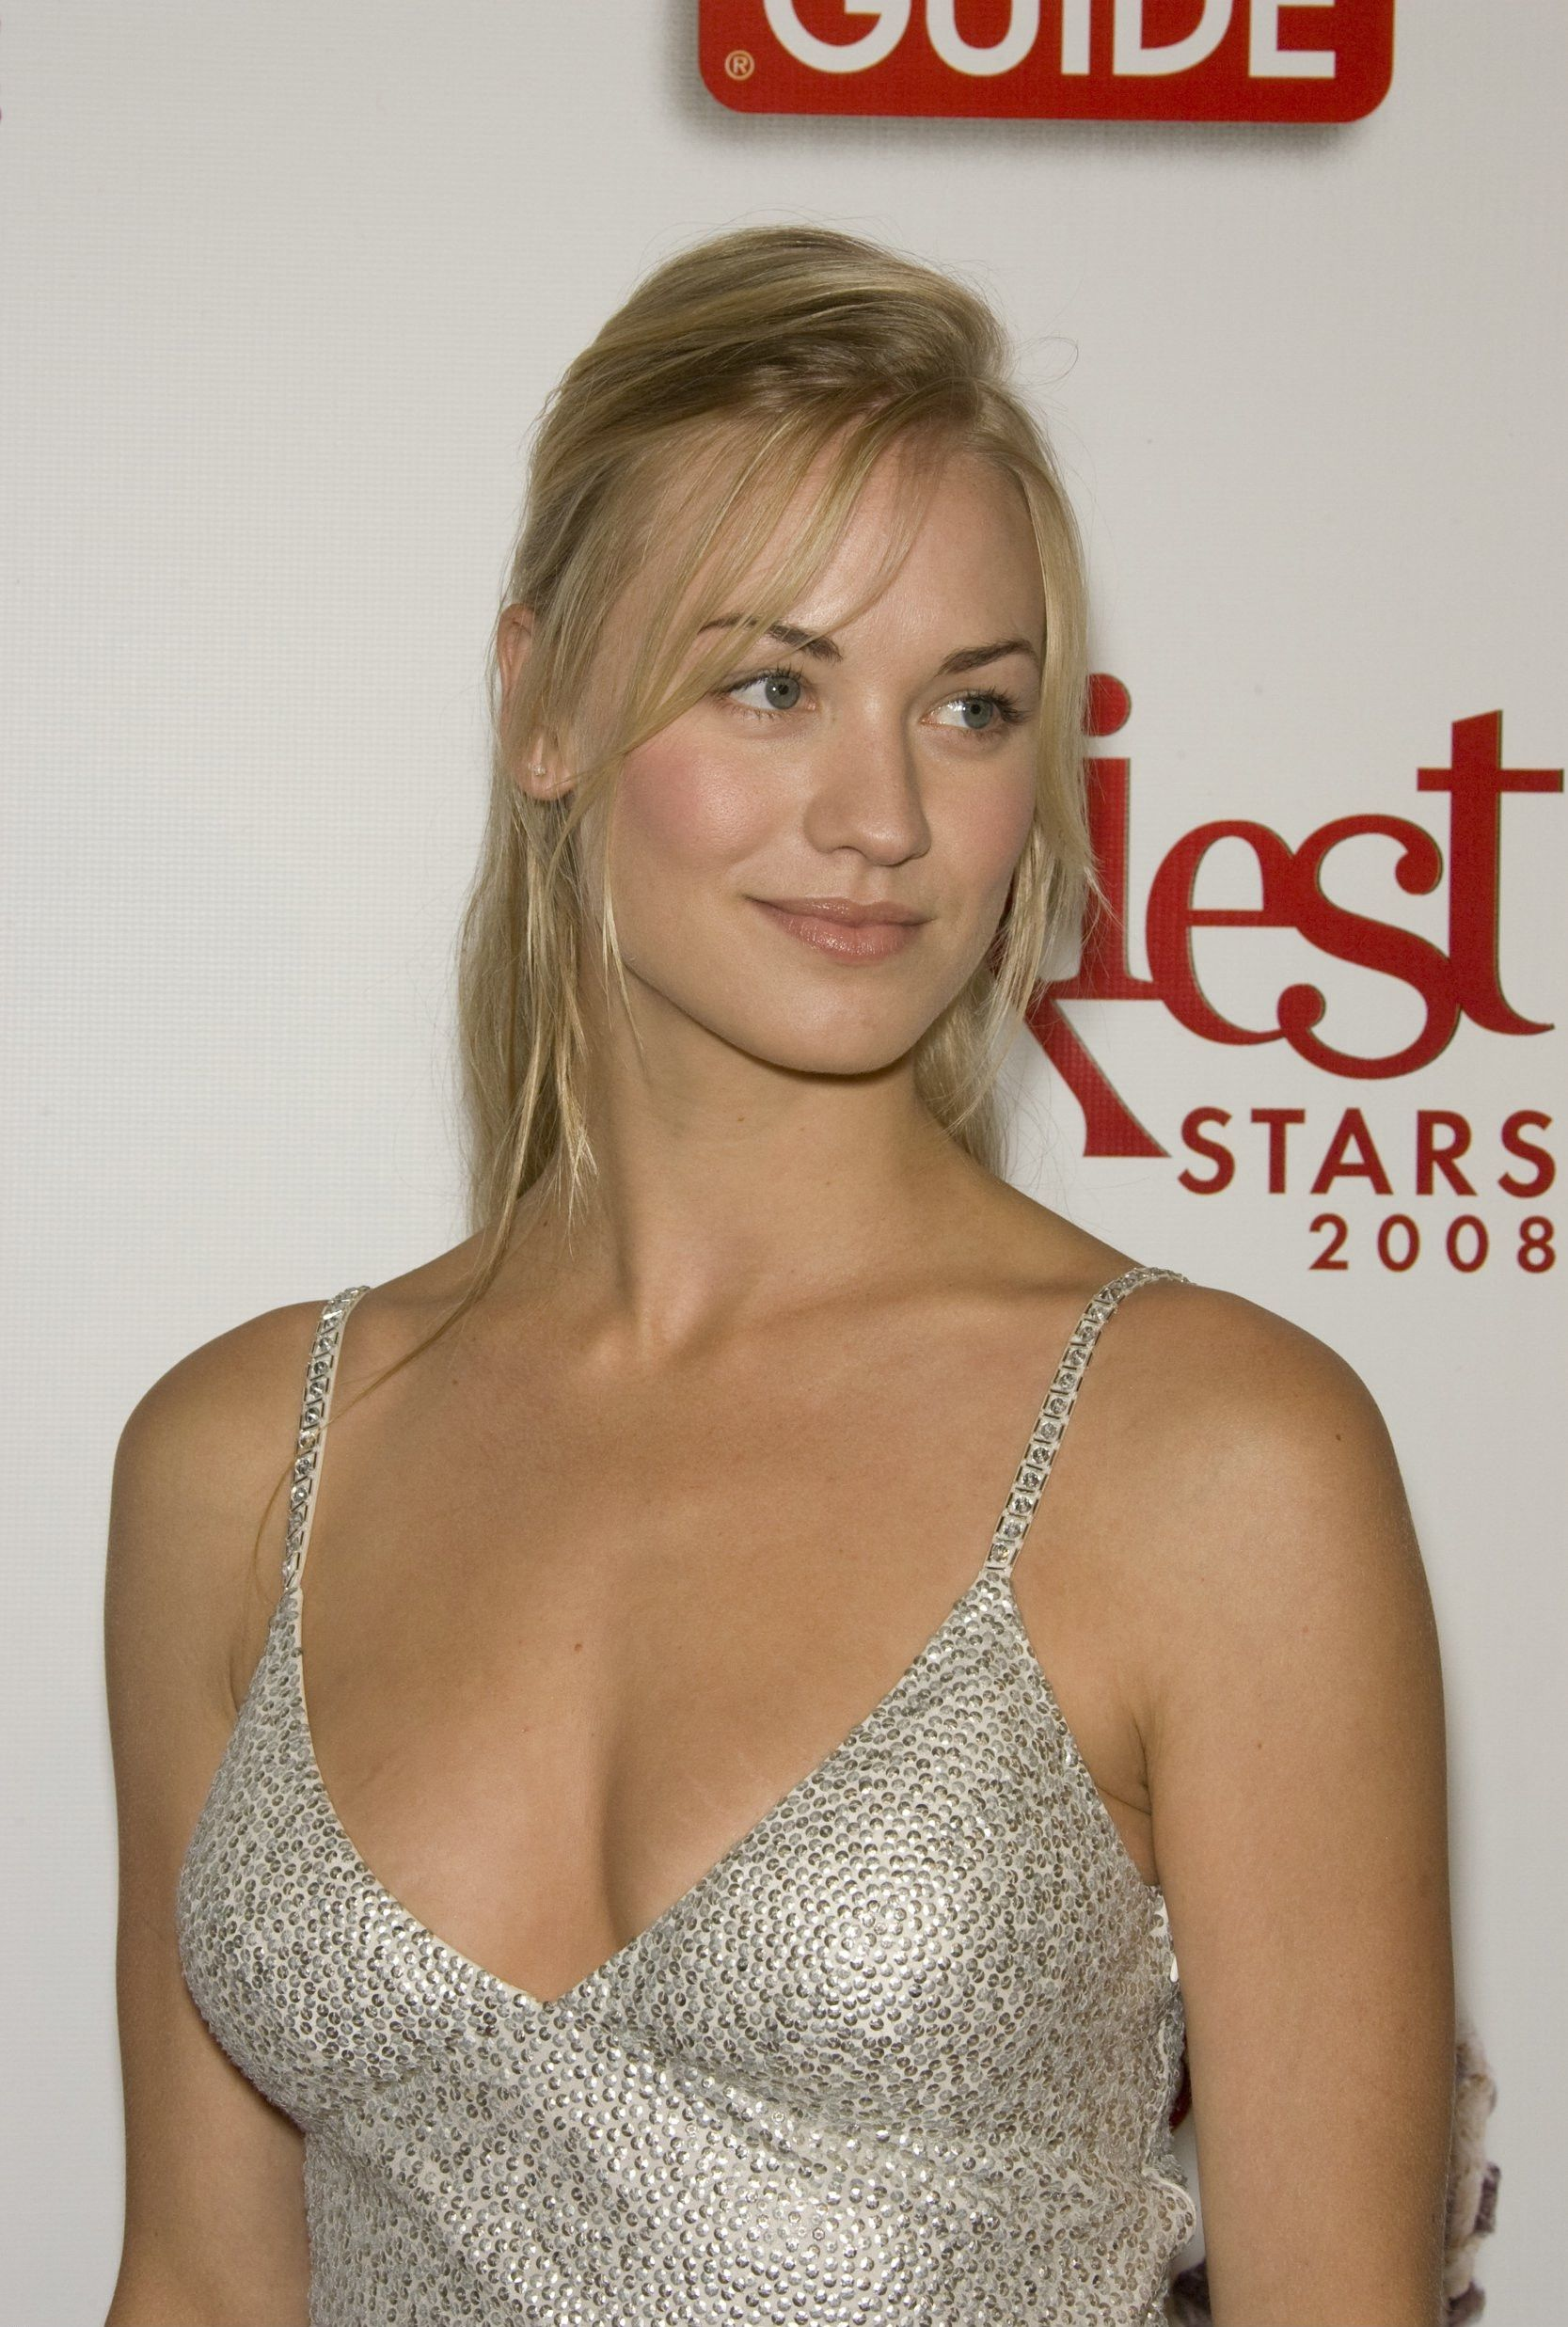 swimsuit Pictures Yvonne Strahovski naked photo 2017